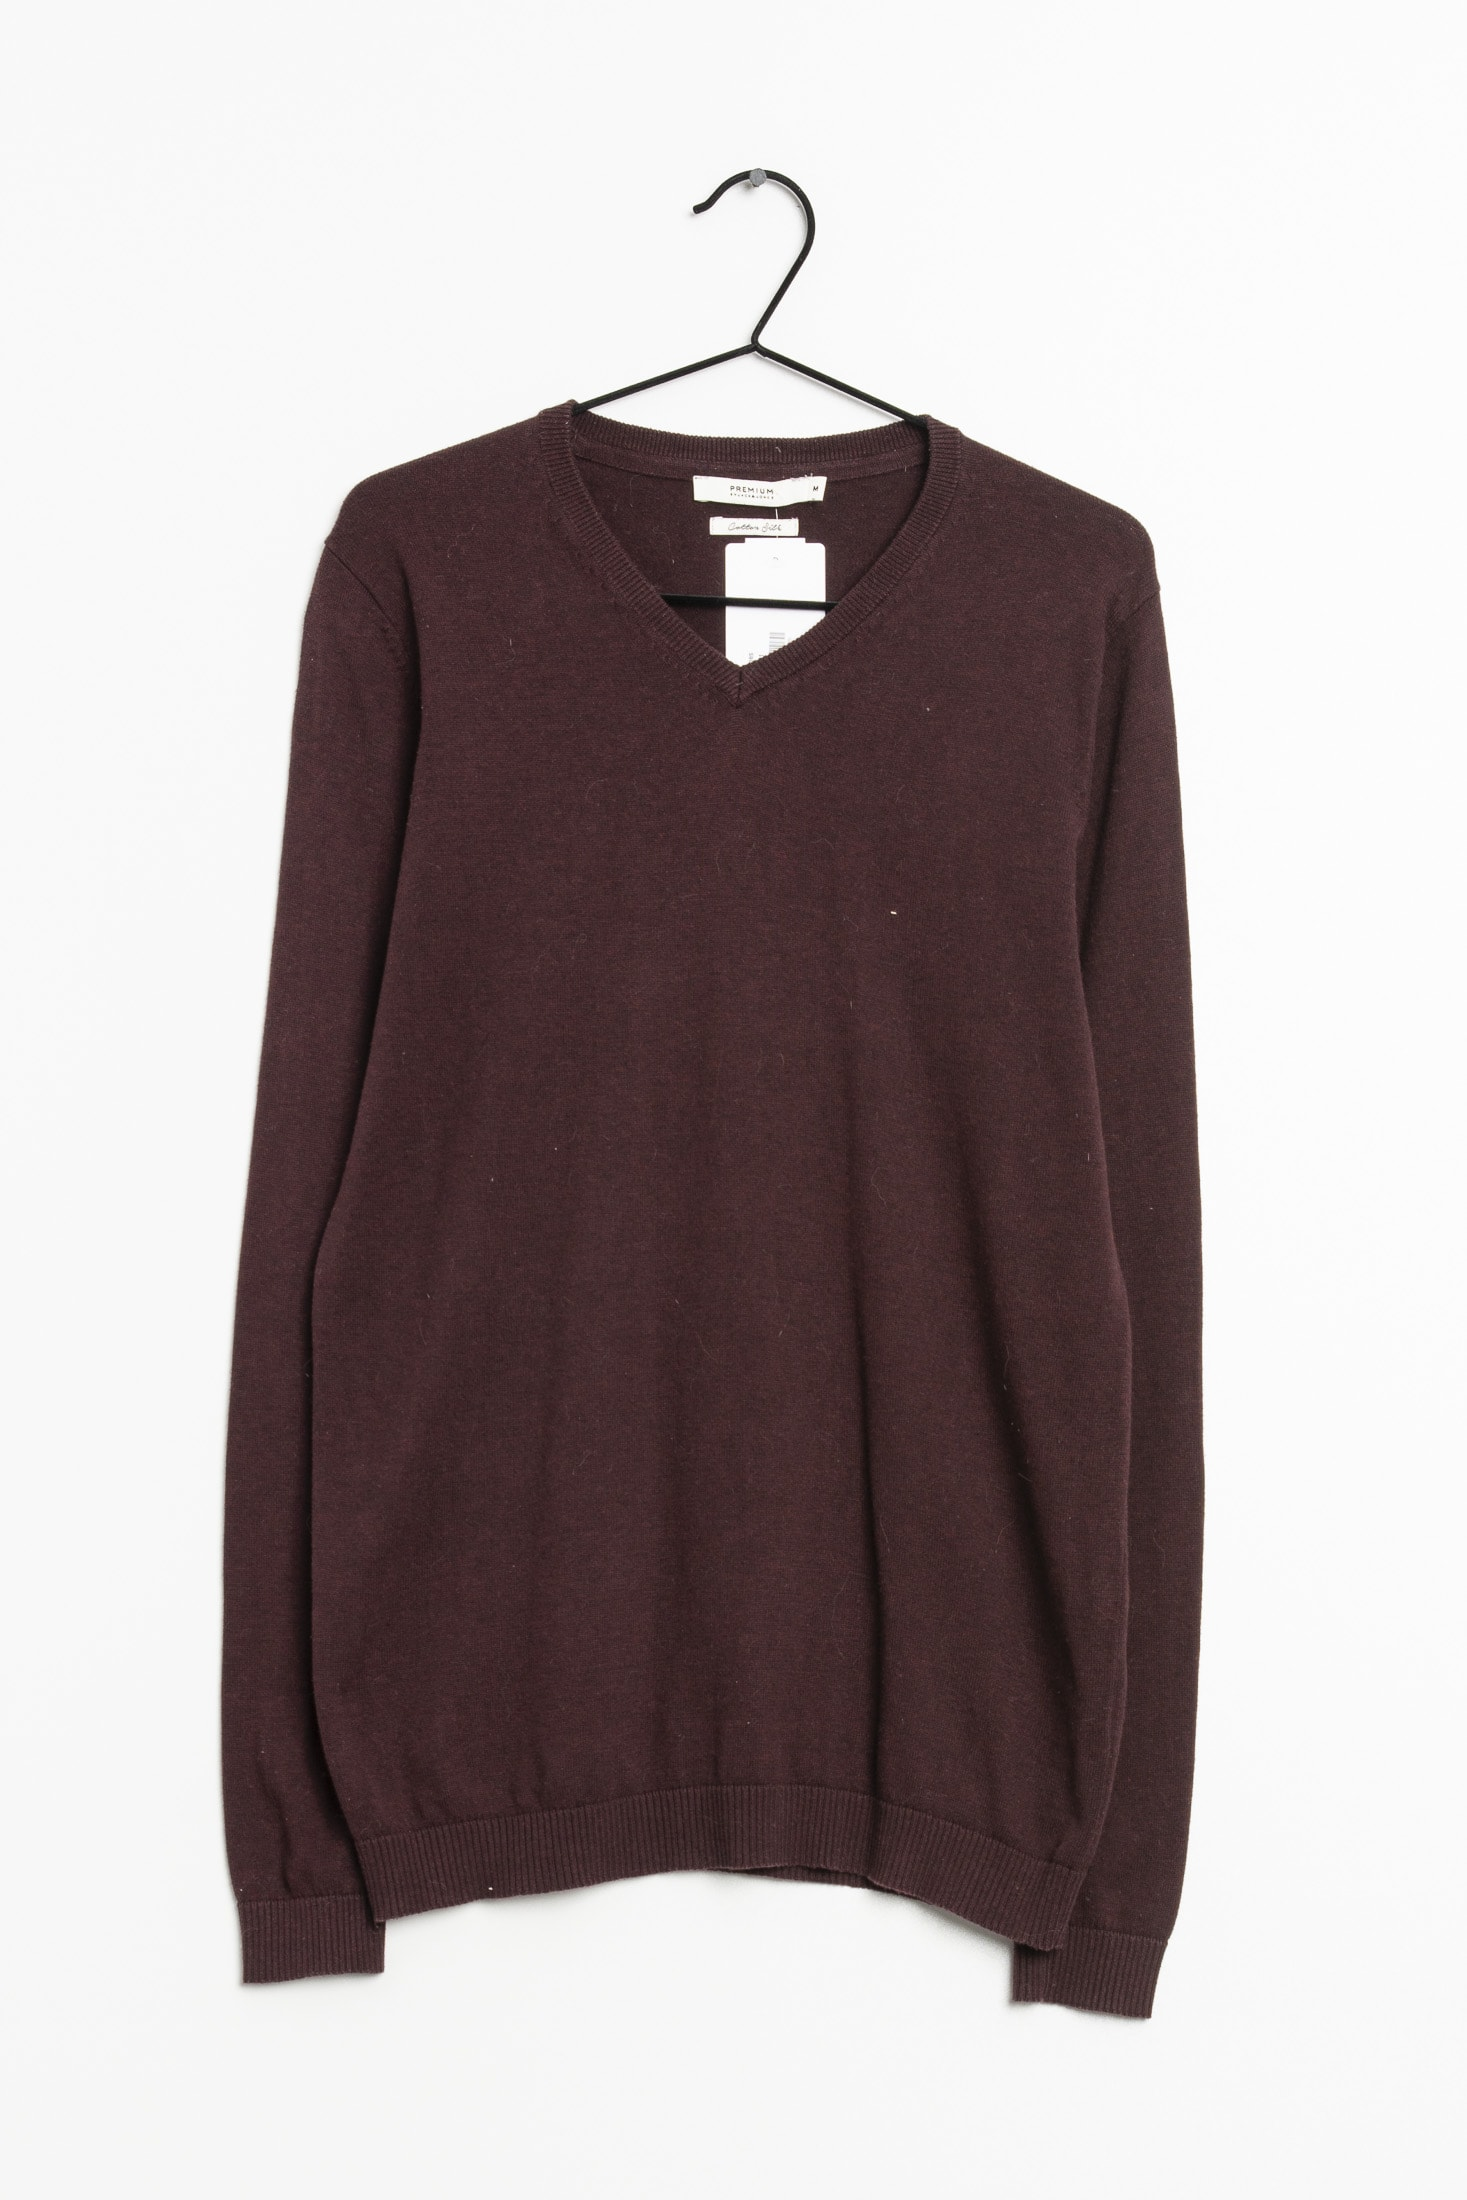 Jack & Jones Strickpullover Lila Gr.M